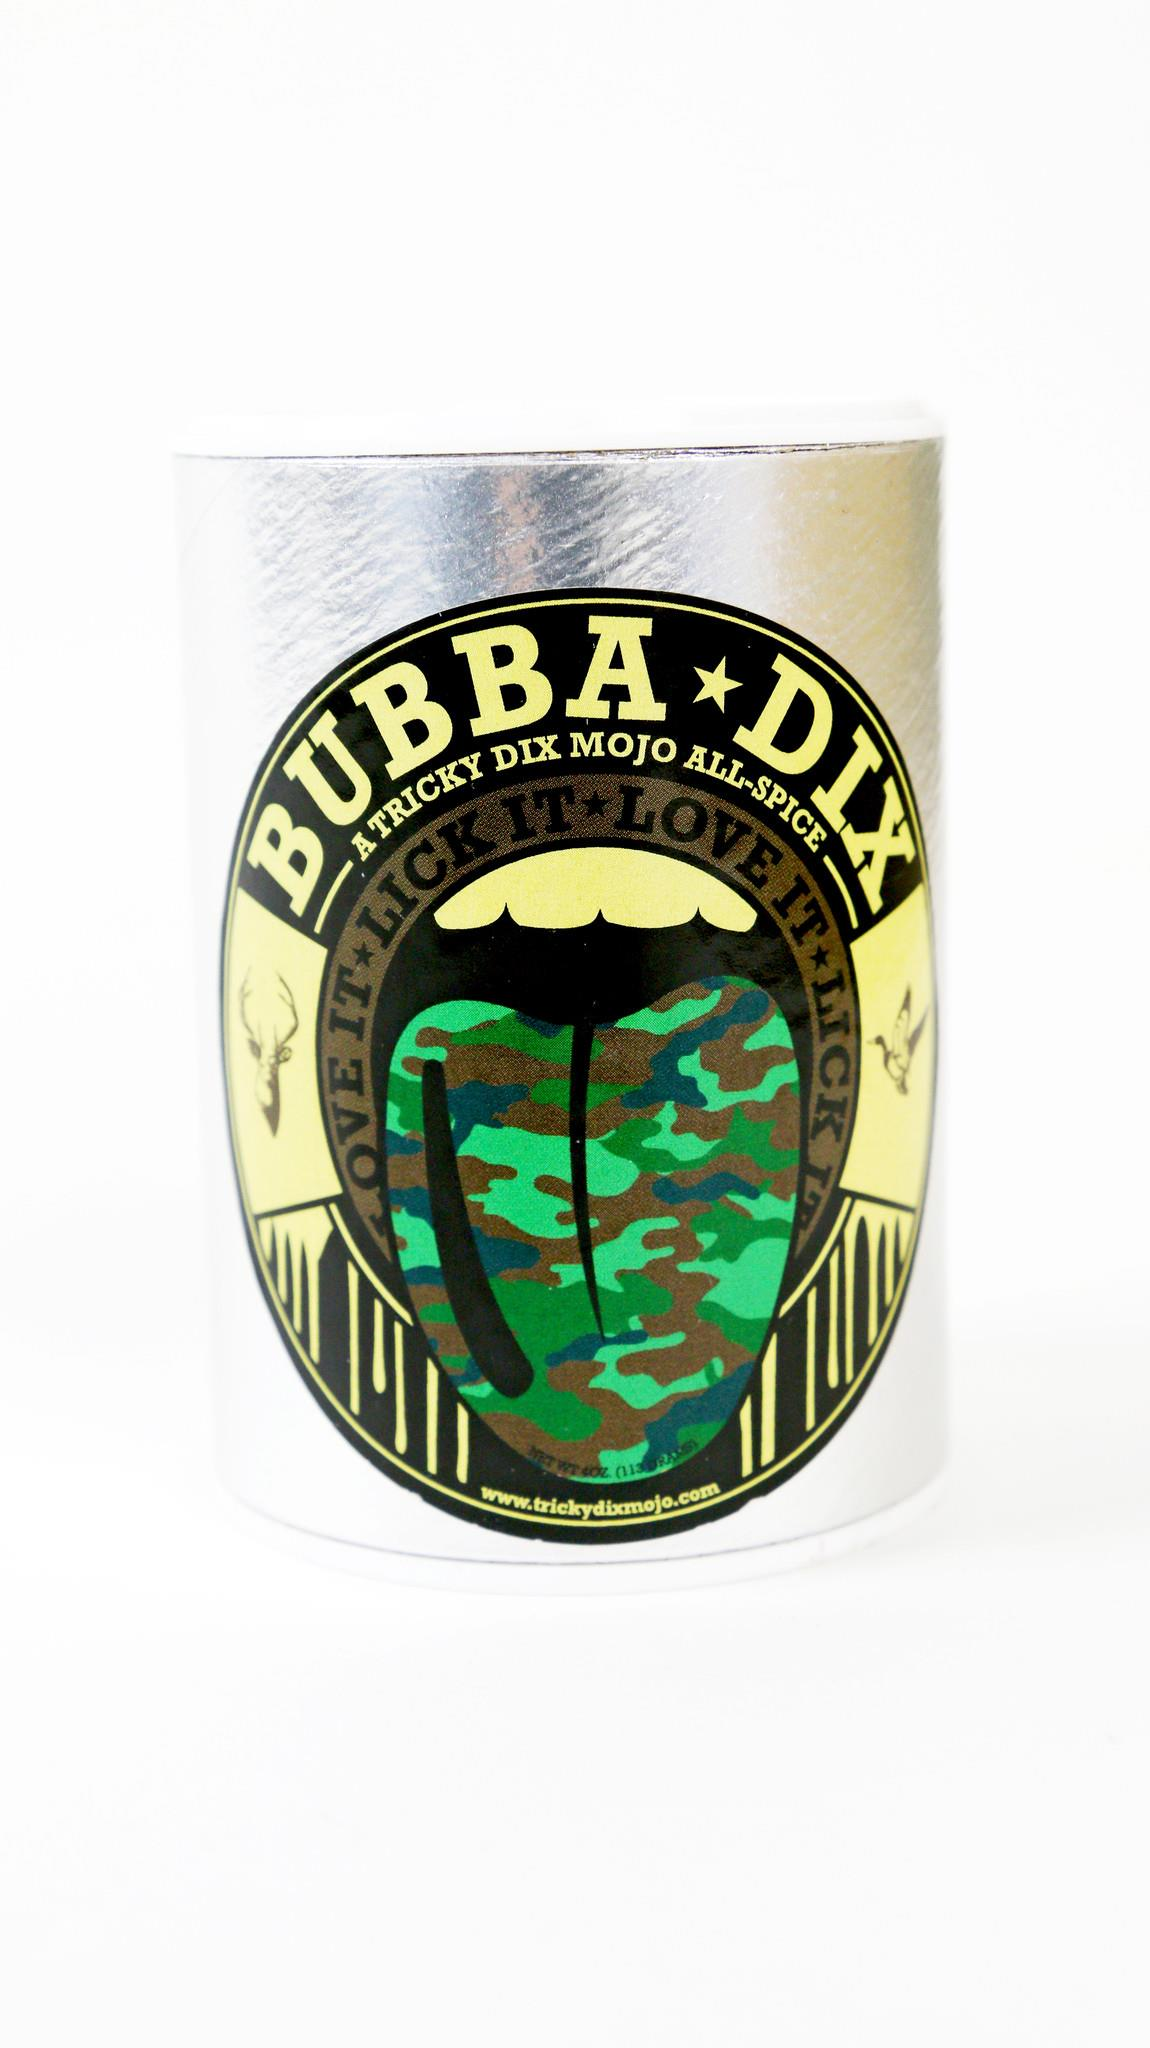 Tricky Dix Mojo Bubba Dix All-Spice for Venison, Duck, Dove, Quail and Crawfish 4 oz.... by